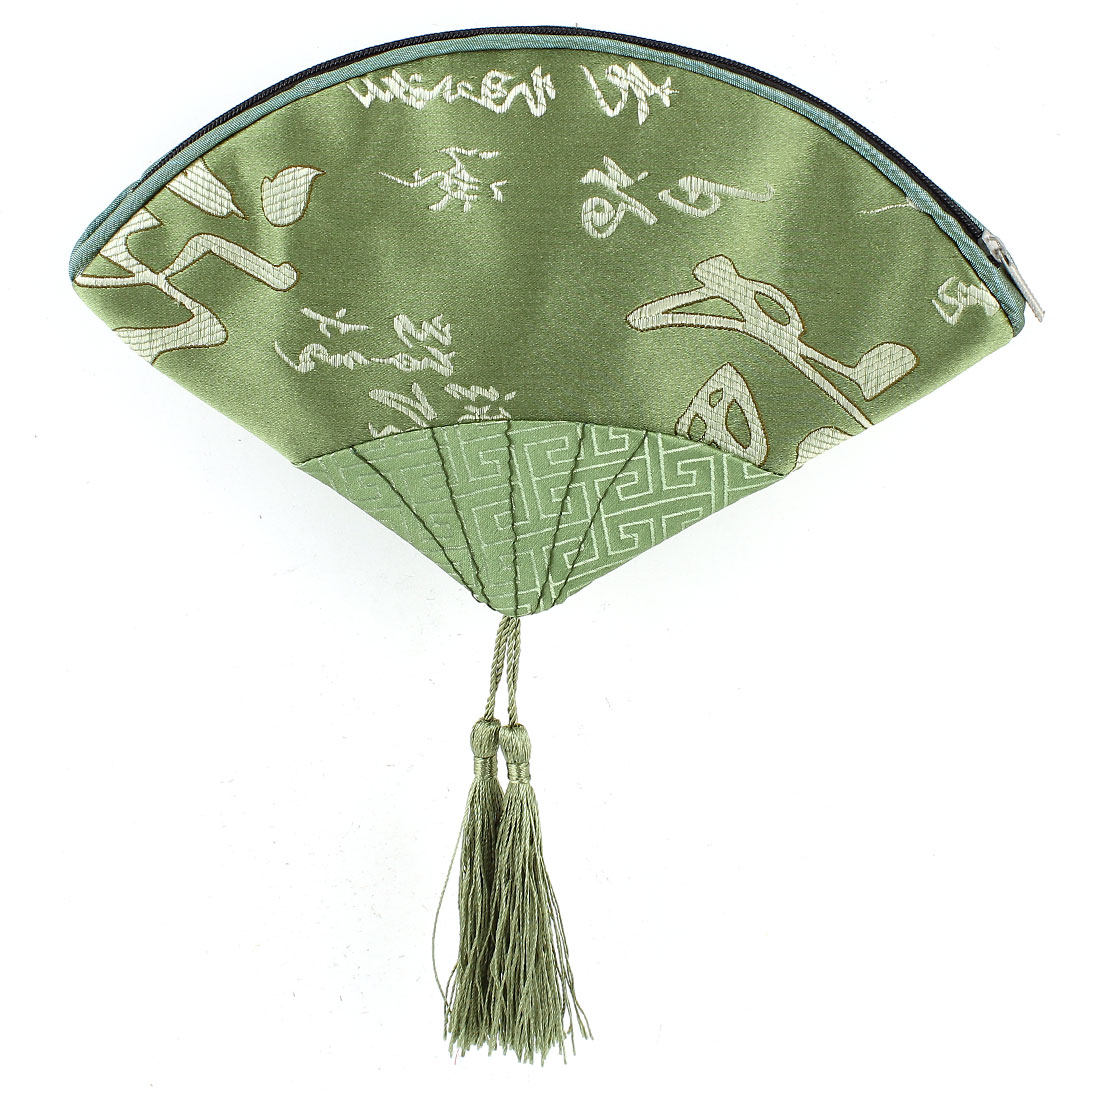 Women Fan Shaped Embroidery Chinese Words Pattern Tassels Decor Zip up Cash Coin Purse Green